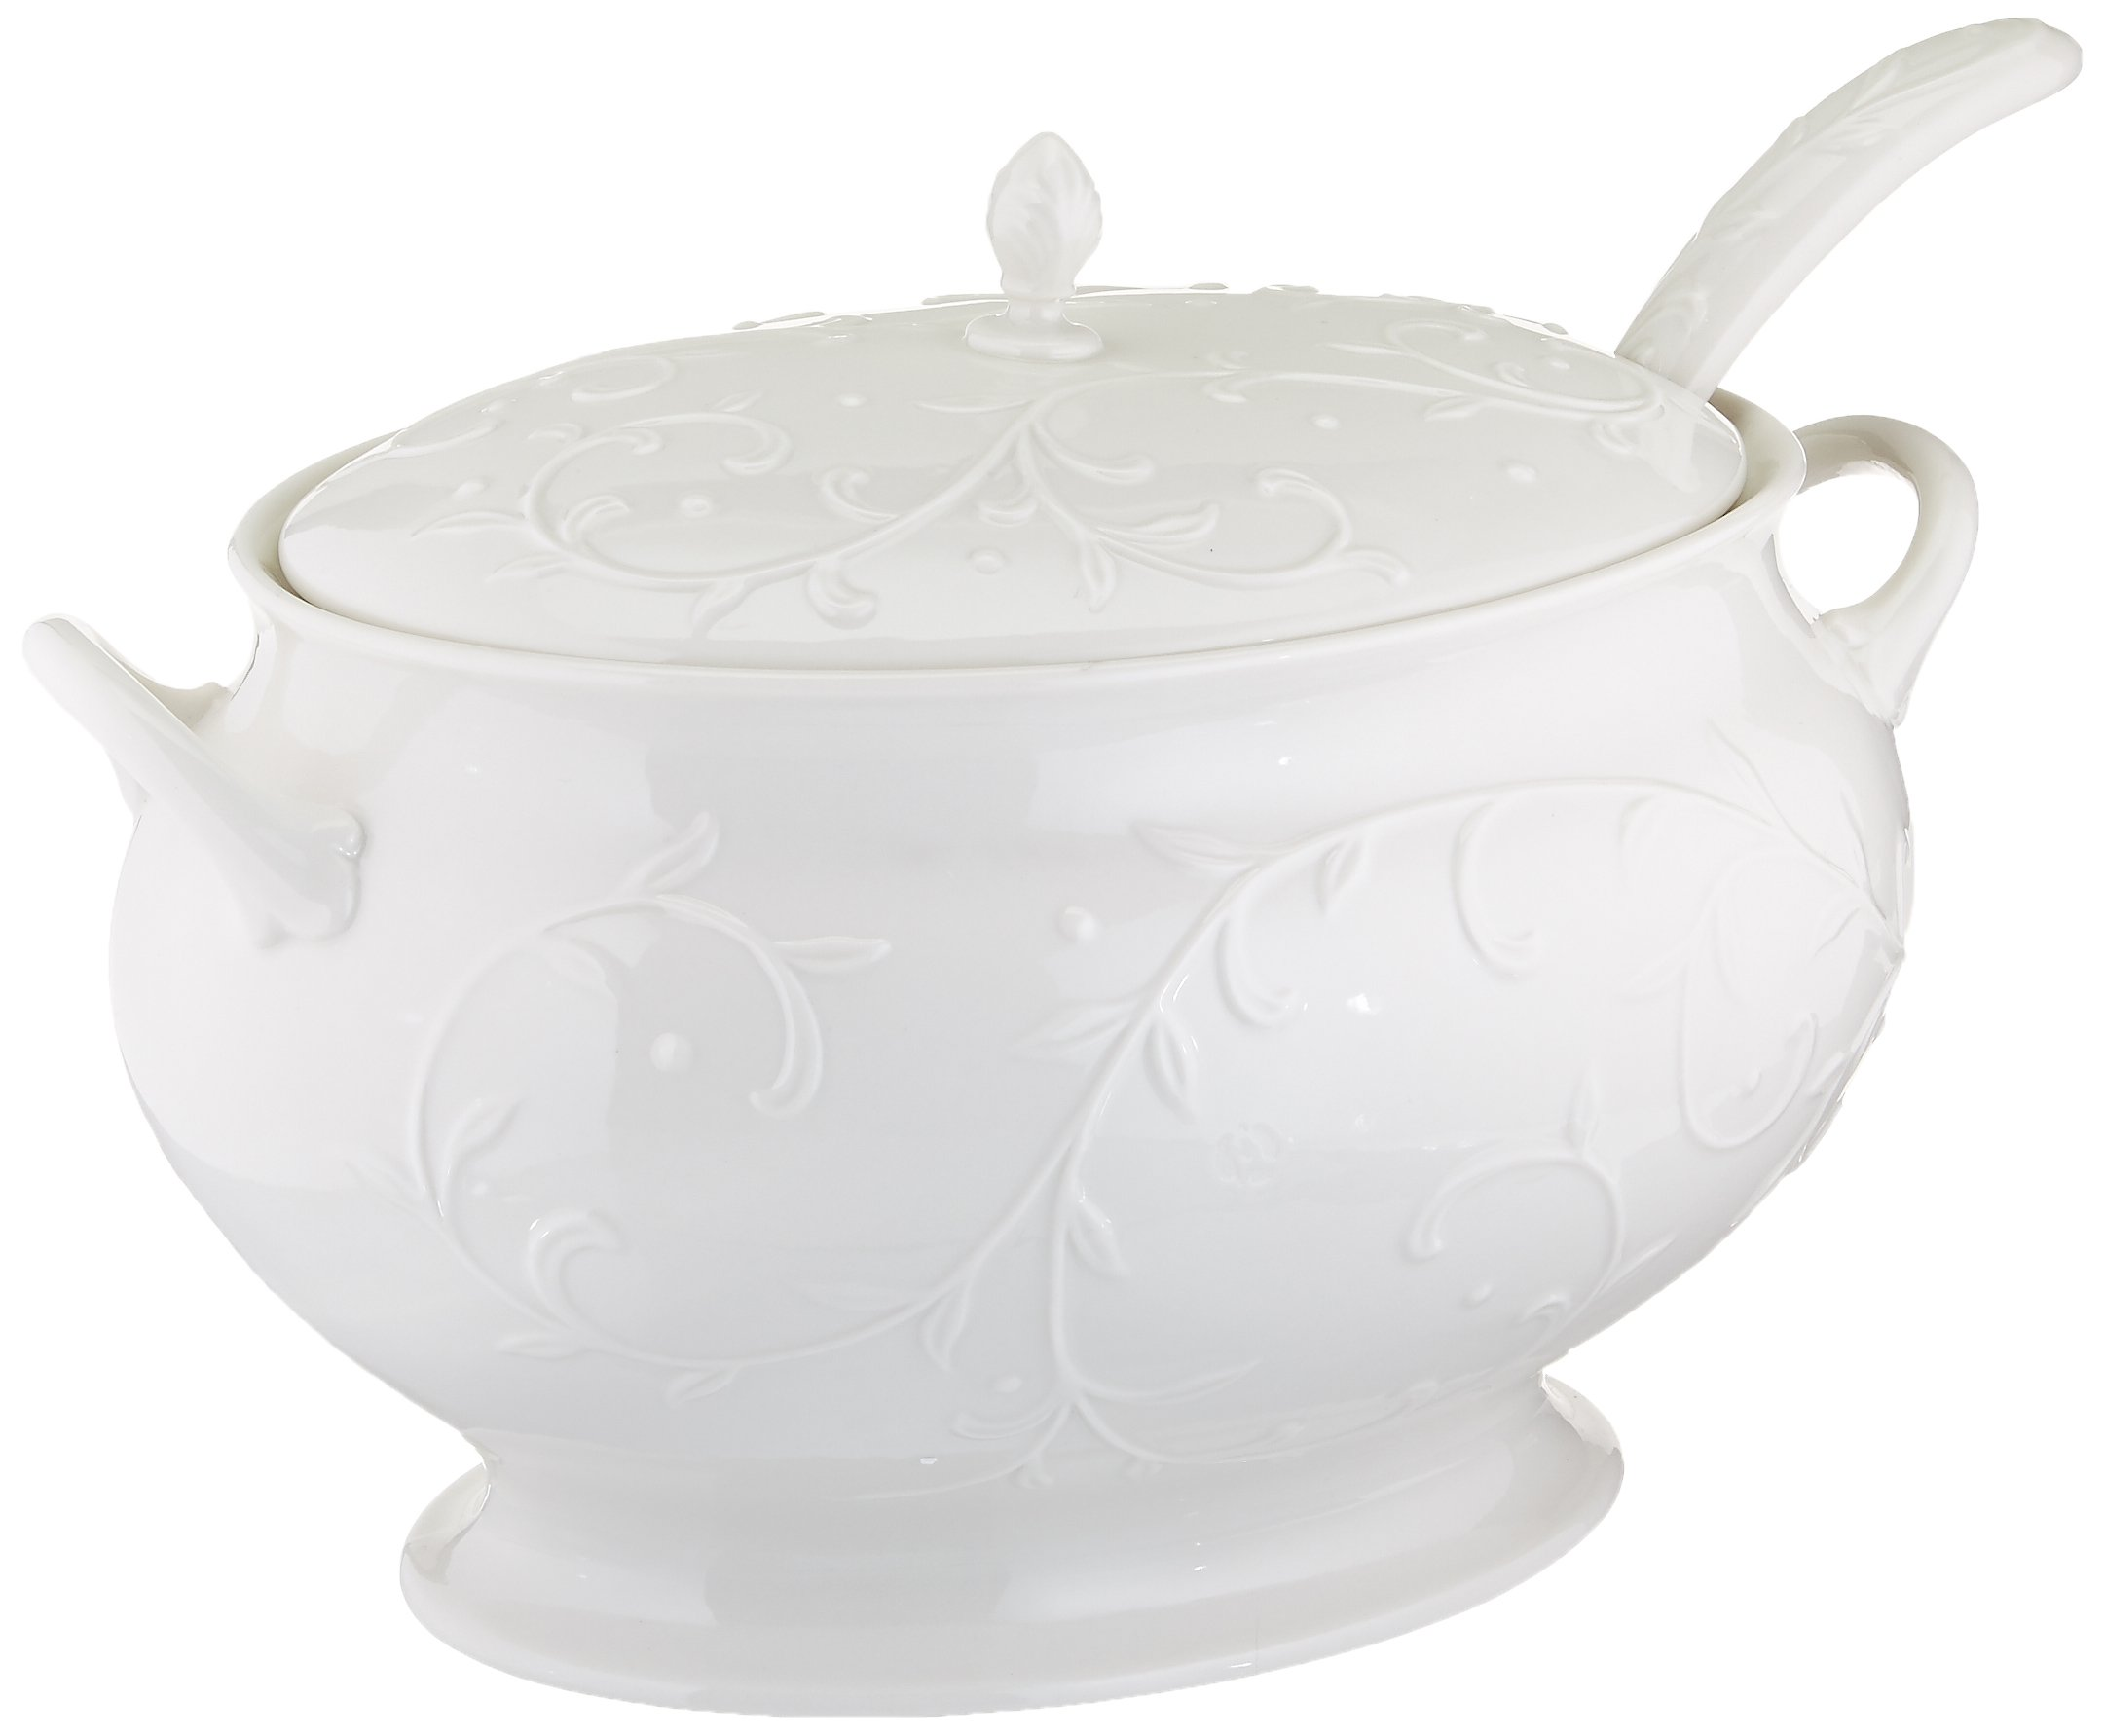 Lenox Opal Innocence Carved Covered Soup Tureen with Ladle, 10-1/4-Inch by Lenox (Image #1)